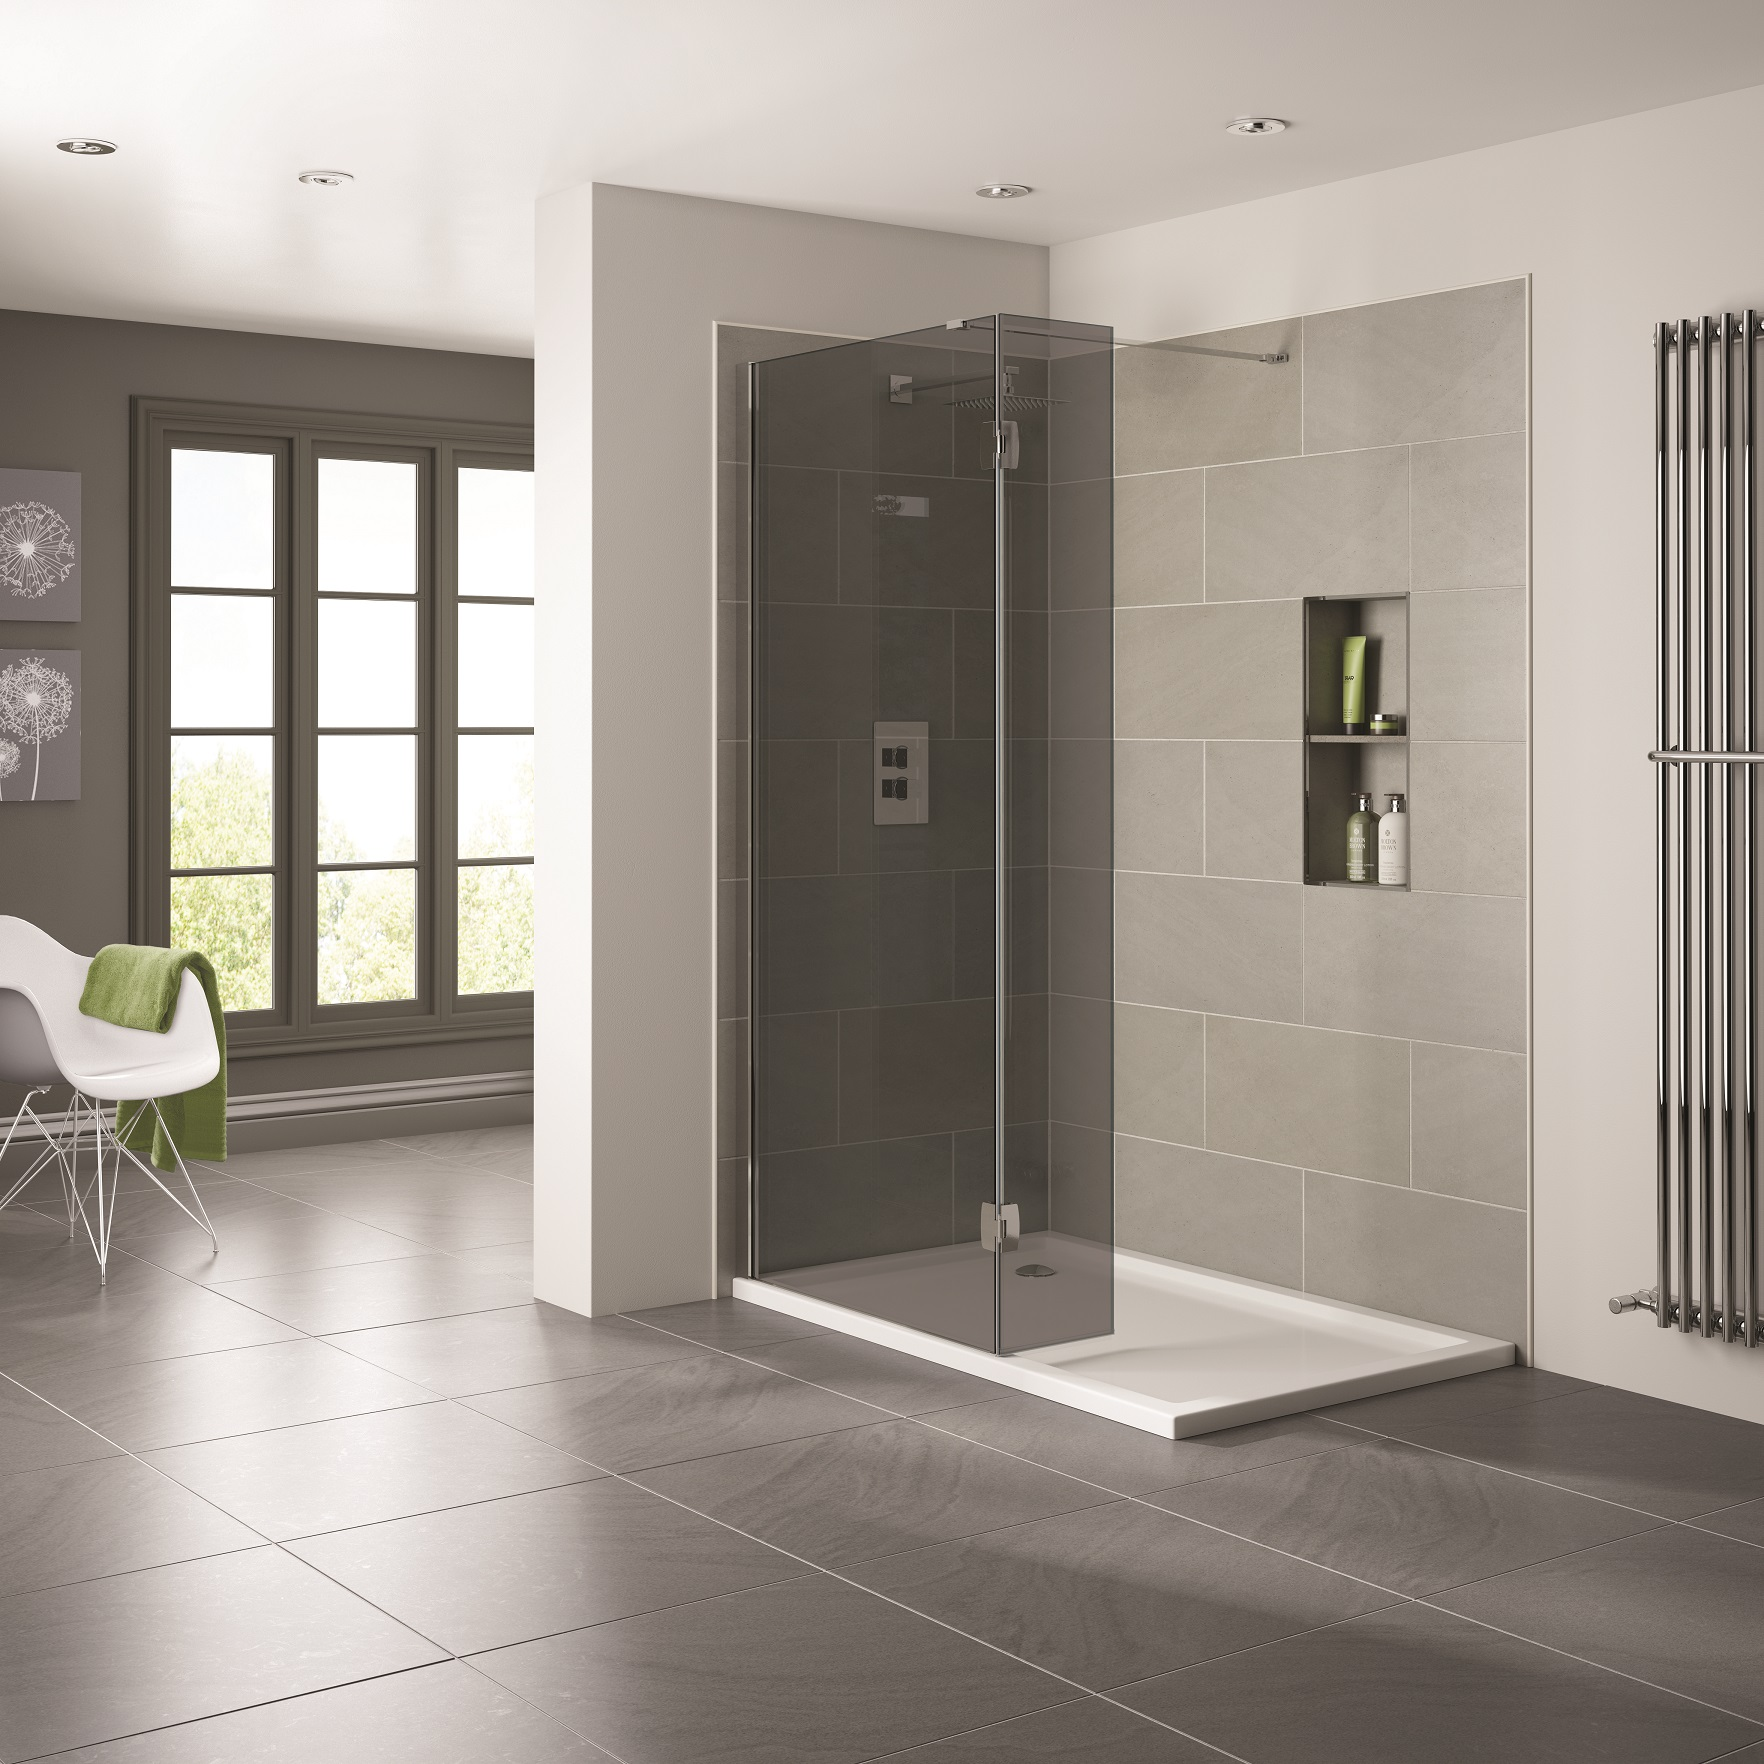 Prestige 10mm Shower Enclosure